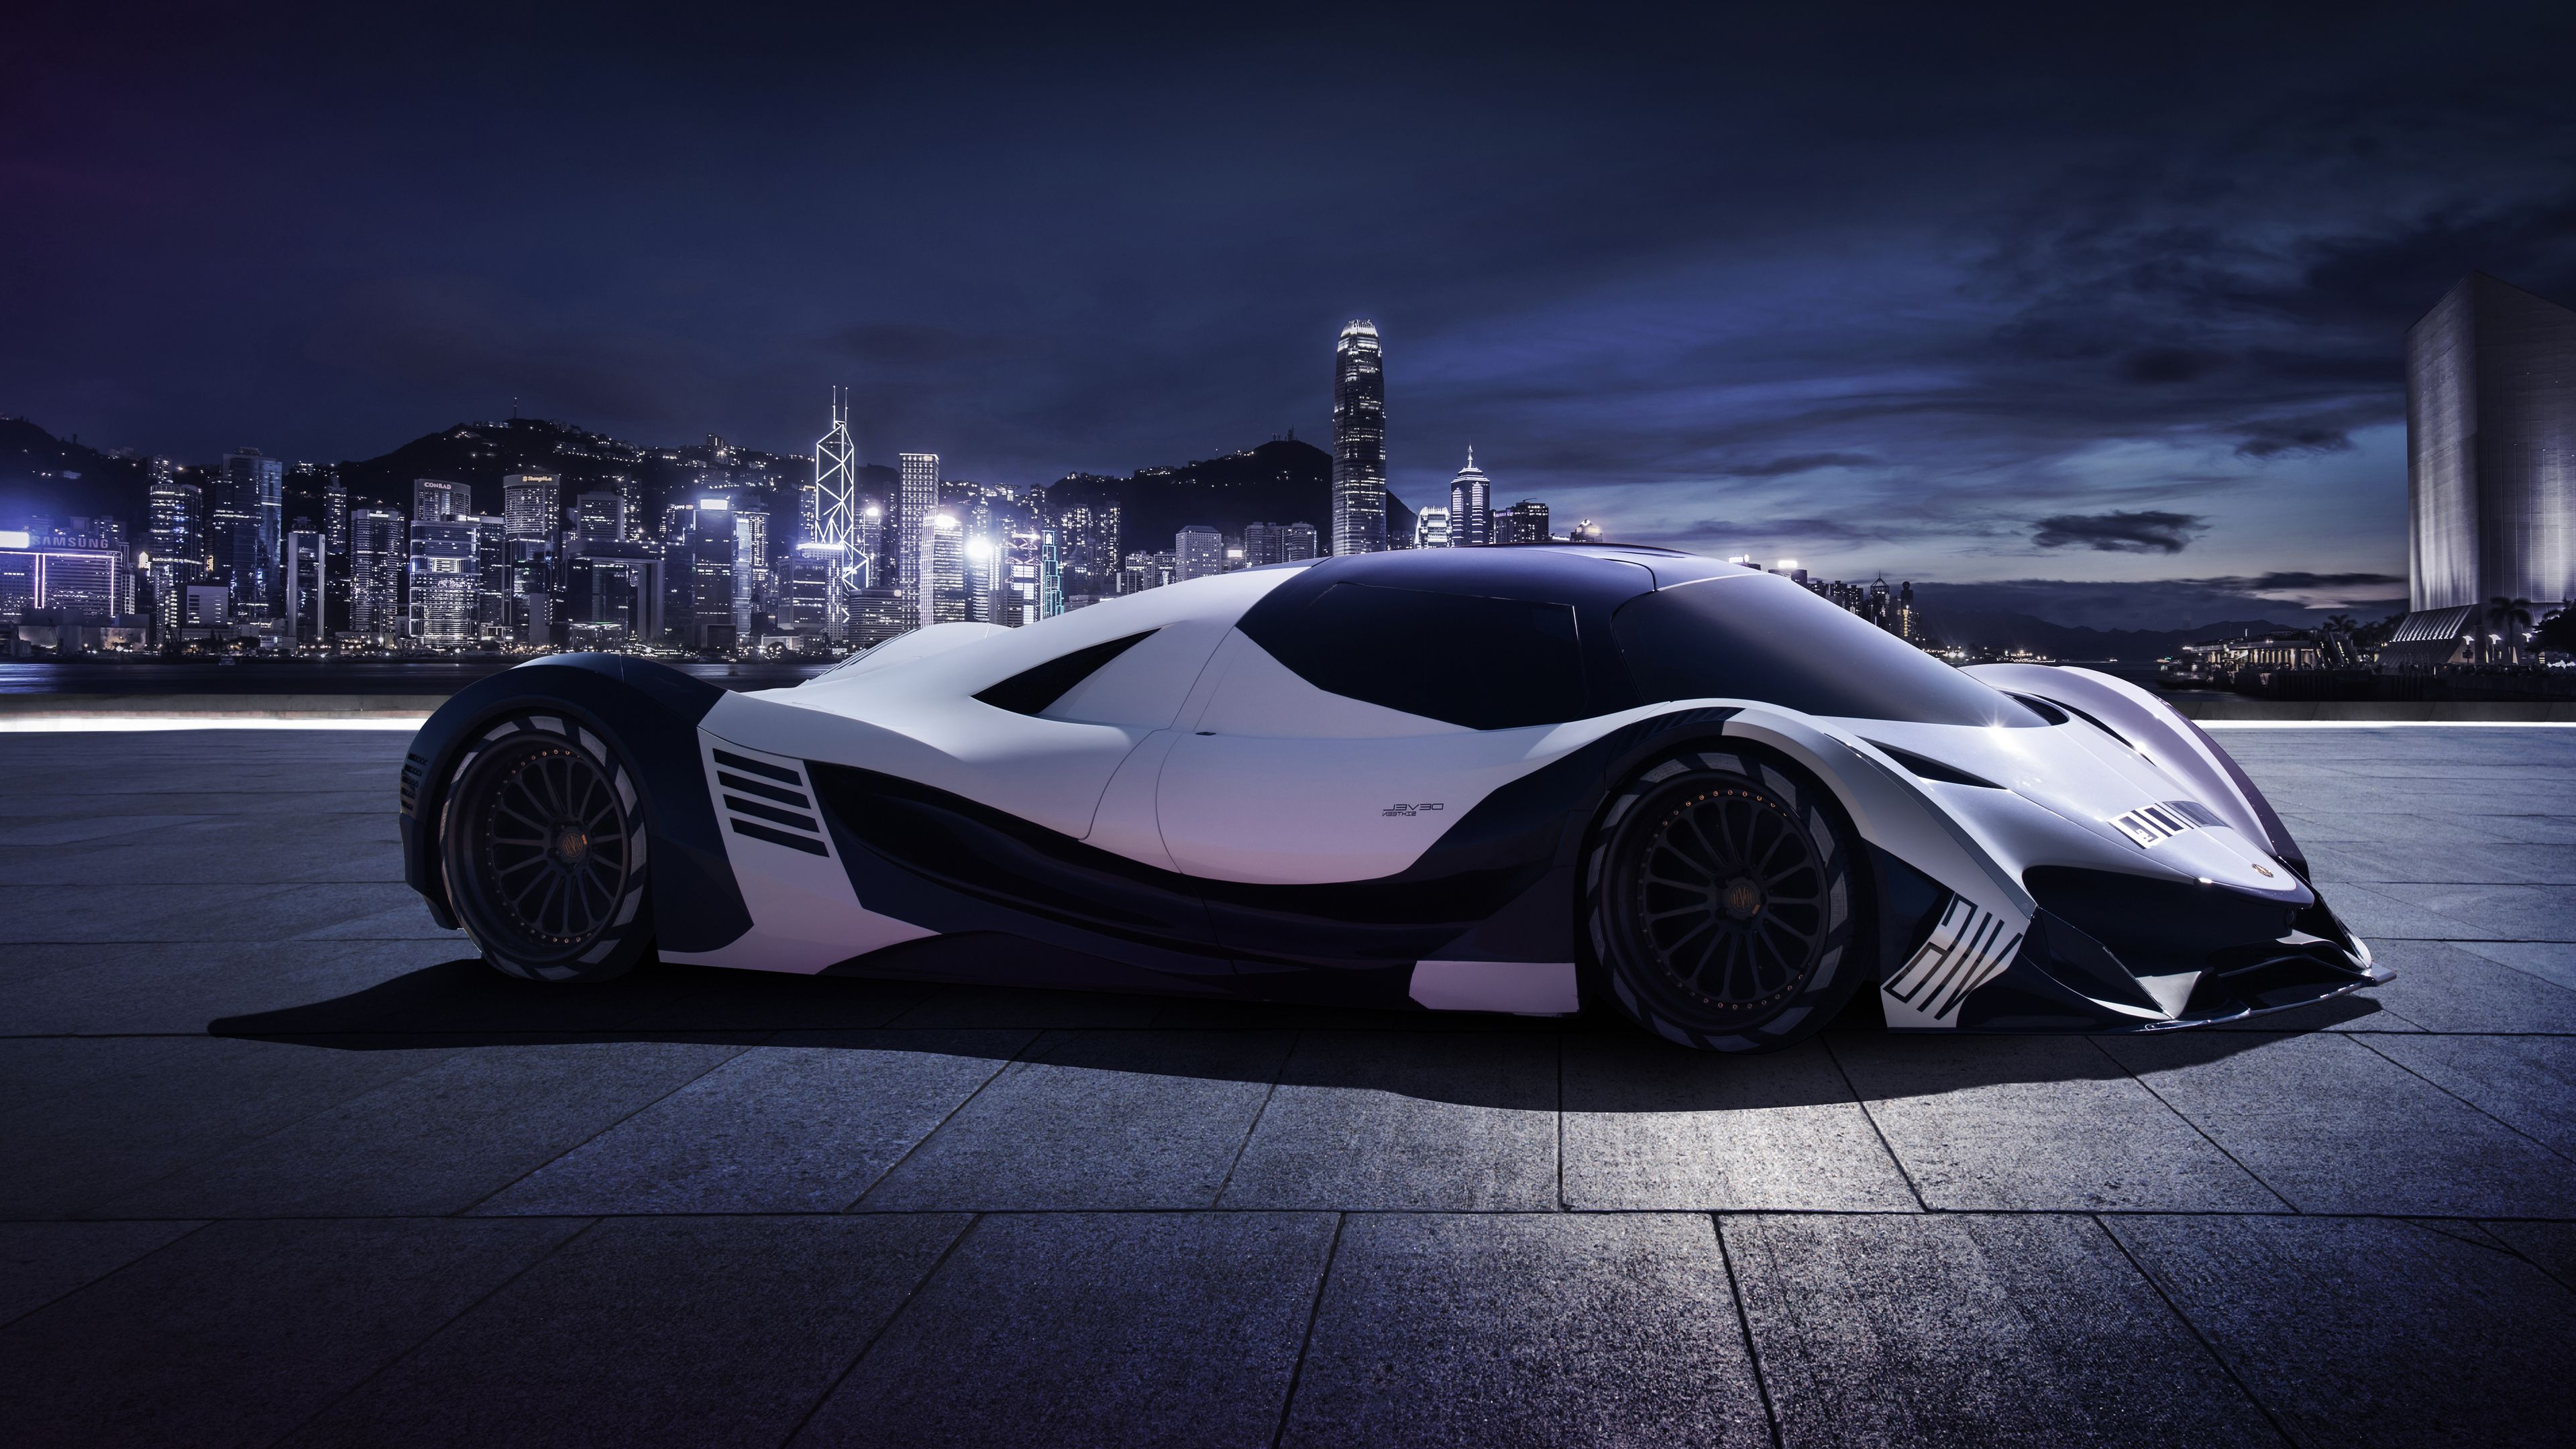 Devel Sixteen 2019 4k Hd Wallpapers Devel Sixteen Wallpapers Concept Cars Wallpapers 5k Wallpapers 4k Wallpapers 201 Car Wallpapers Super Cars Sports Cars